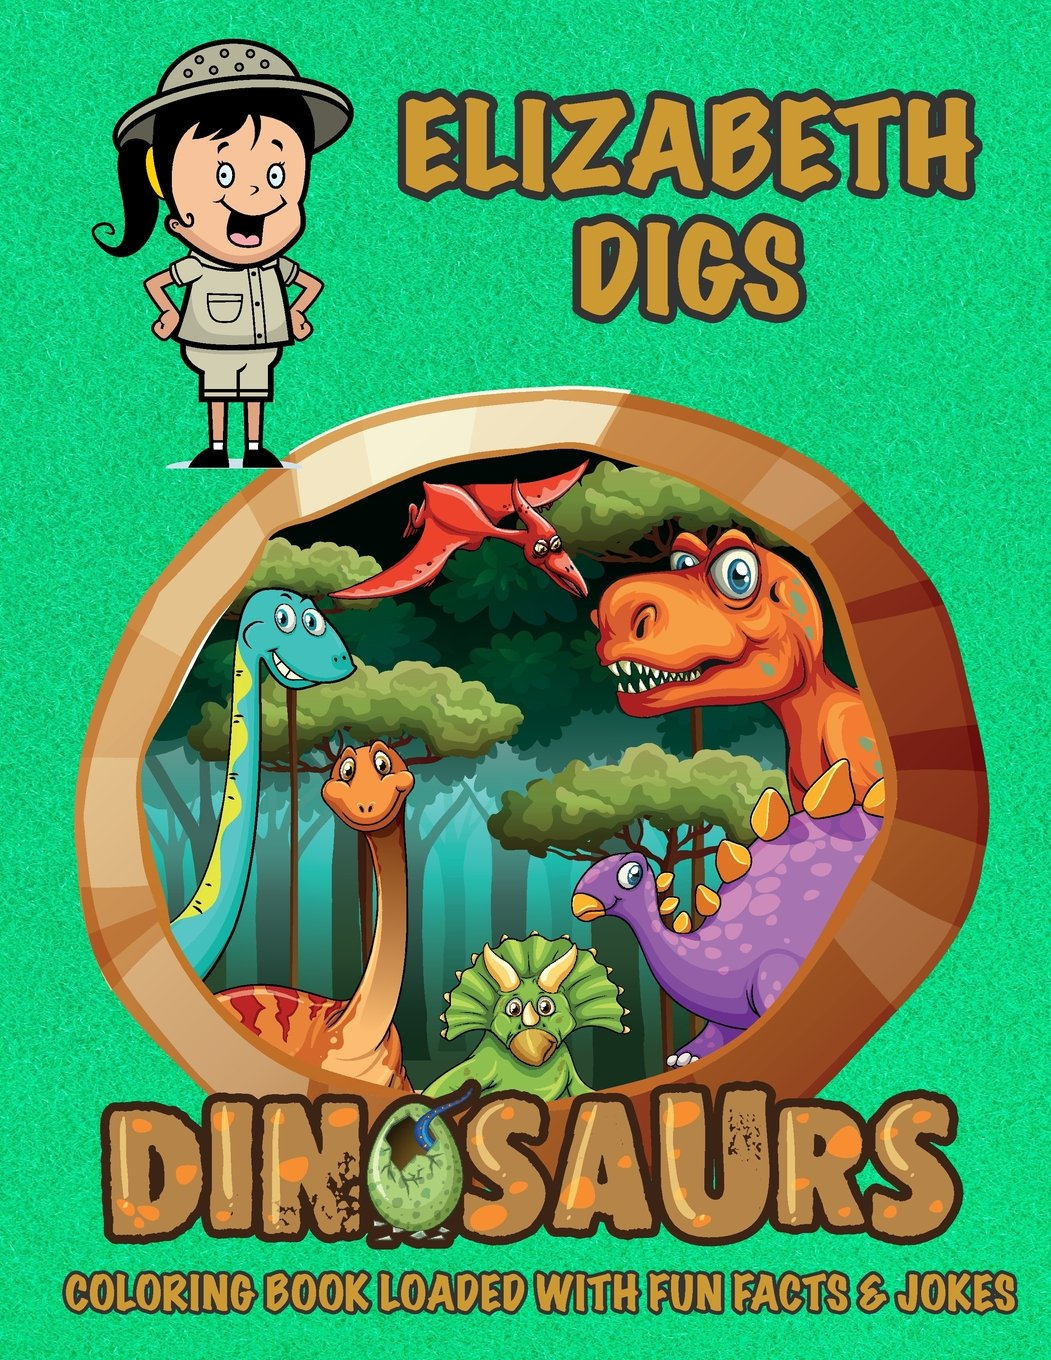 Elizabeth Digs Dinosaurs Coloring Book Loaded With Fun Facts & Jokes (Personalized Books for Children) pdf epub